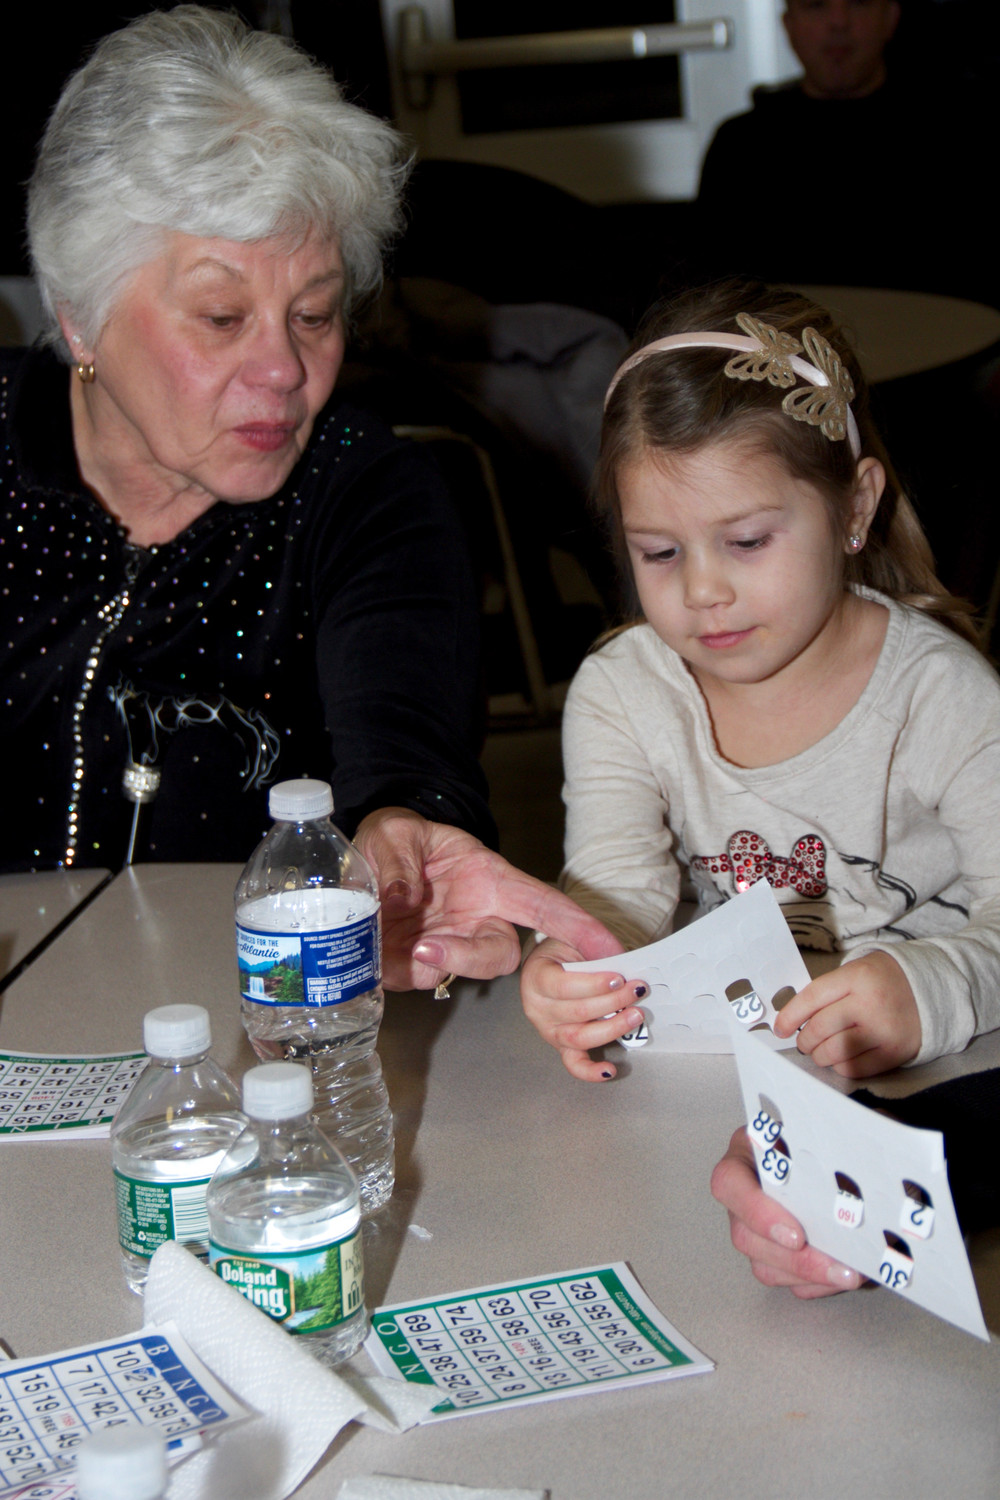 Carol DeAngelo helped her granddaughter Ava DeVito, 4, mark up her Bingo card.